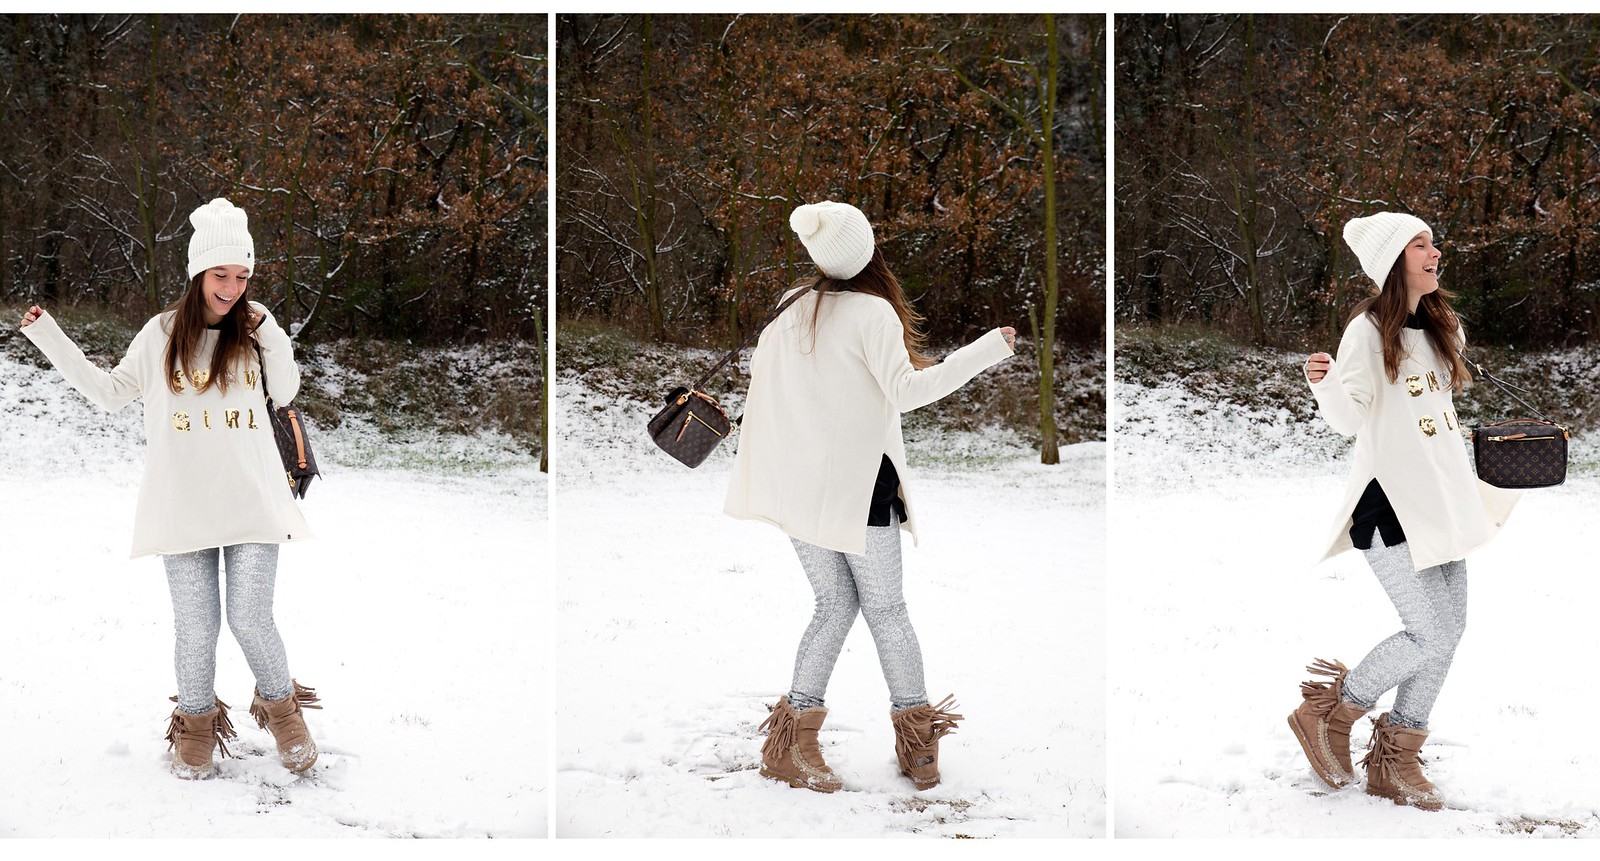 08_SNOW_GIRL_OUTFIT_THEGUESTGIRL_LAURA_SANTOLARIA_FASHION_BLOGGER_RUGACOLLECTION_MOUBOOTS_WINTER